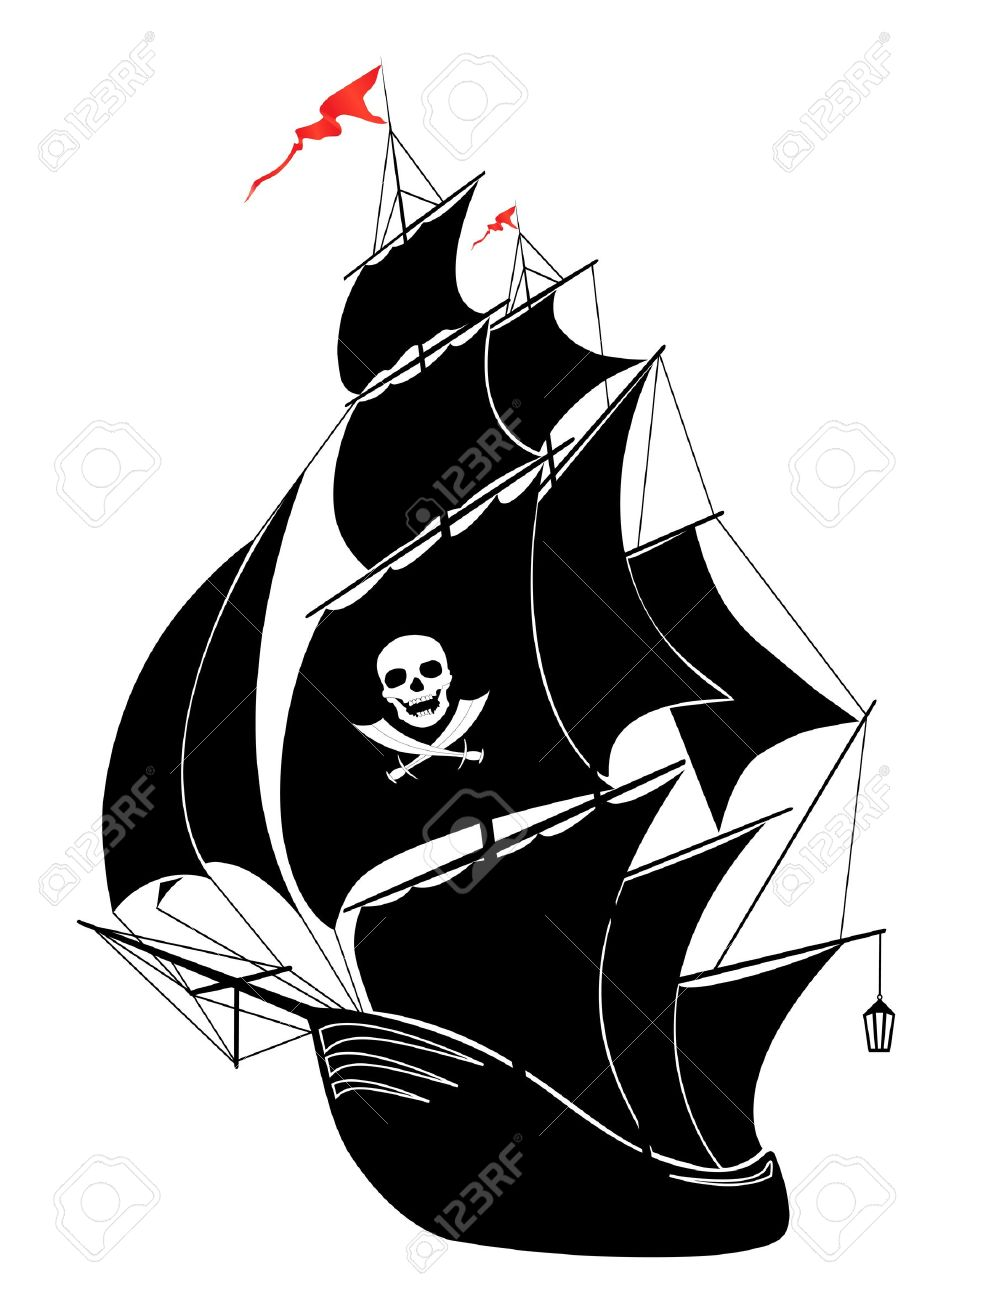 a silhouette of a old sail pirate ship vector illustration royalty rh 123rf com pirate ship vector free pirate ship vector drawing